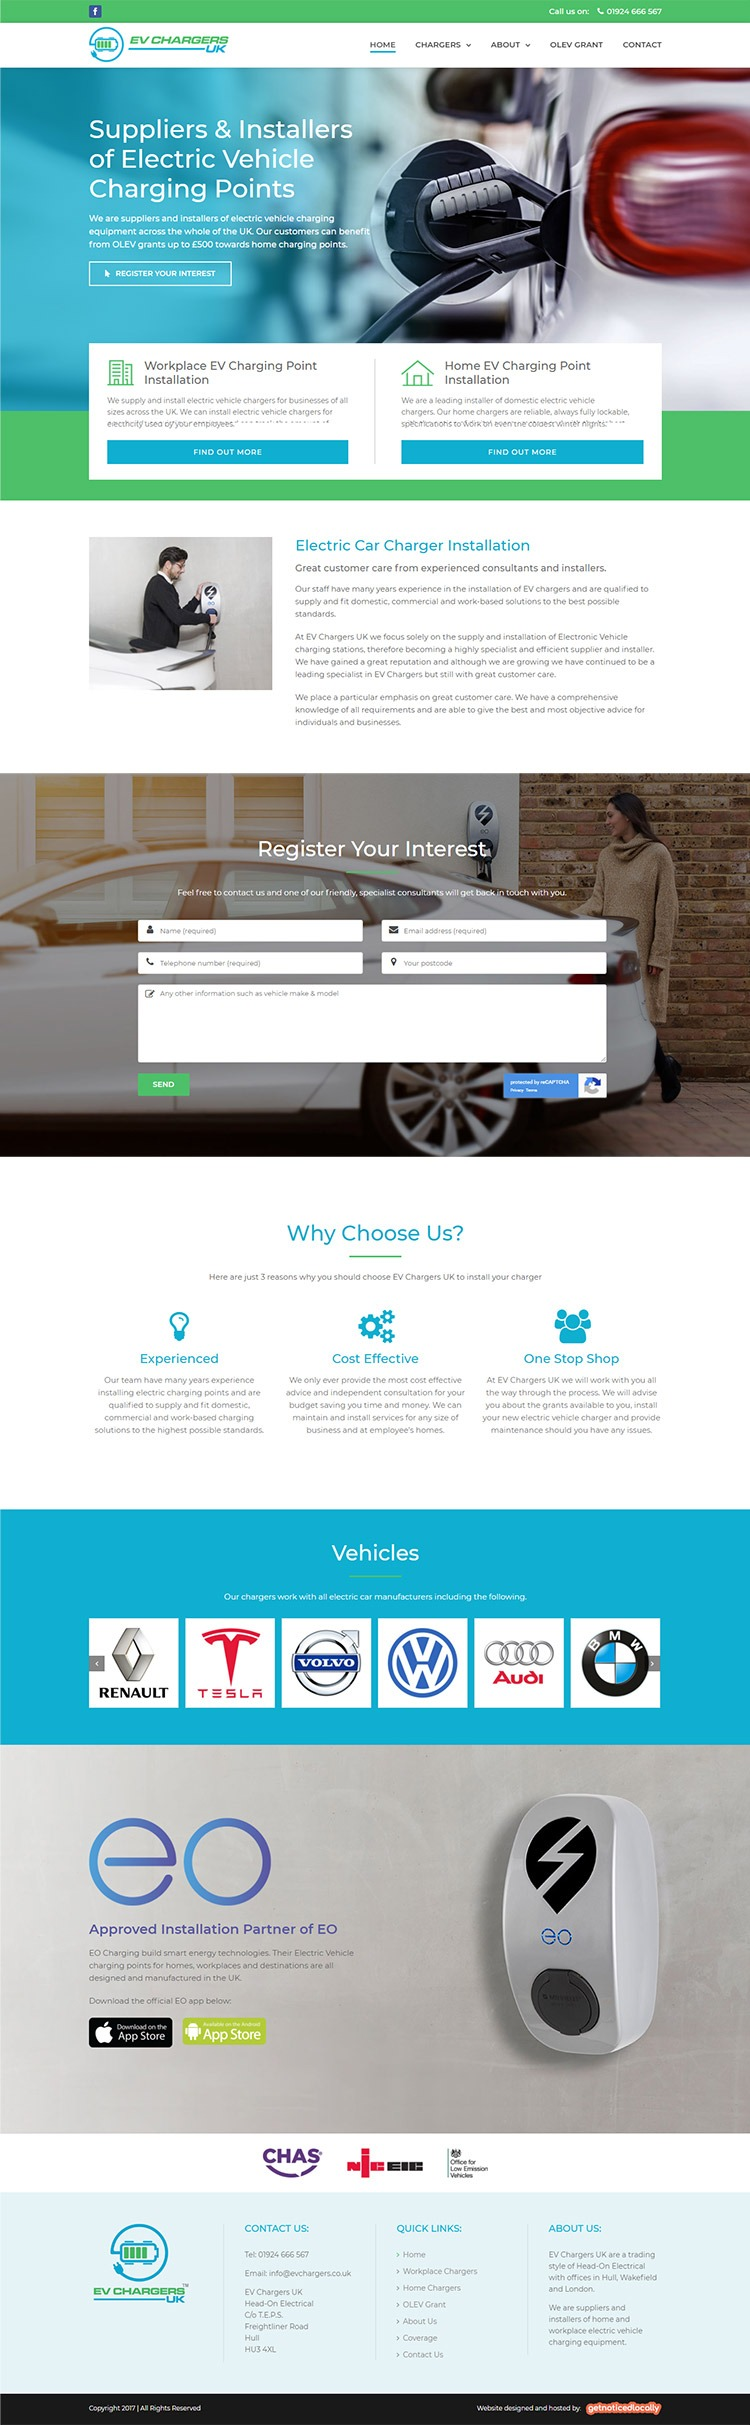 EV Chargers Hull website design